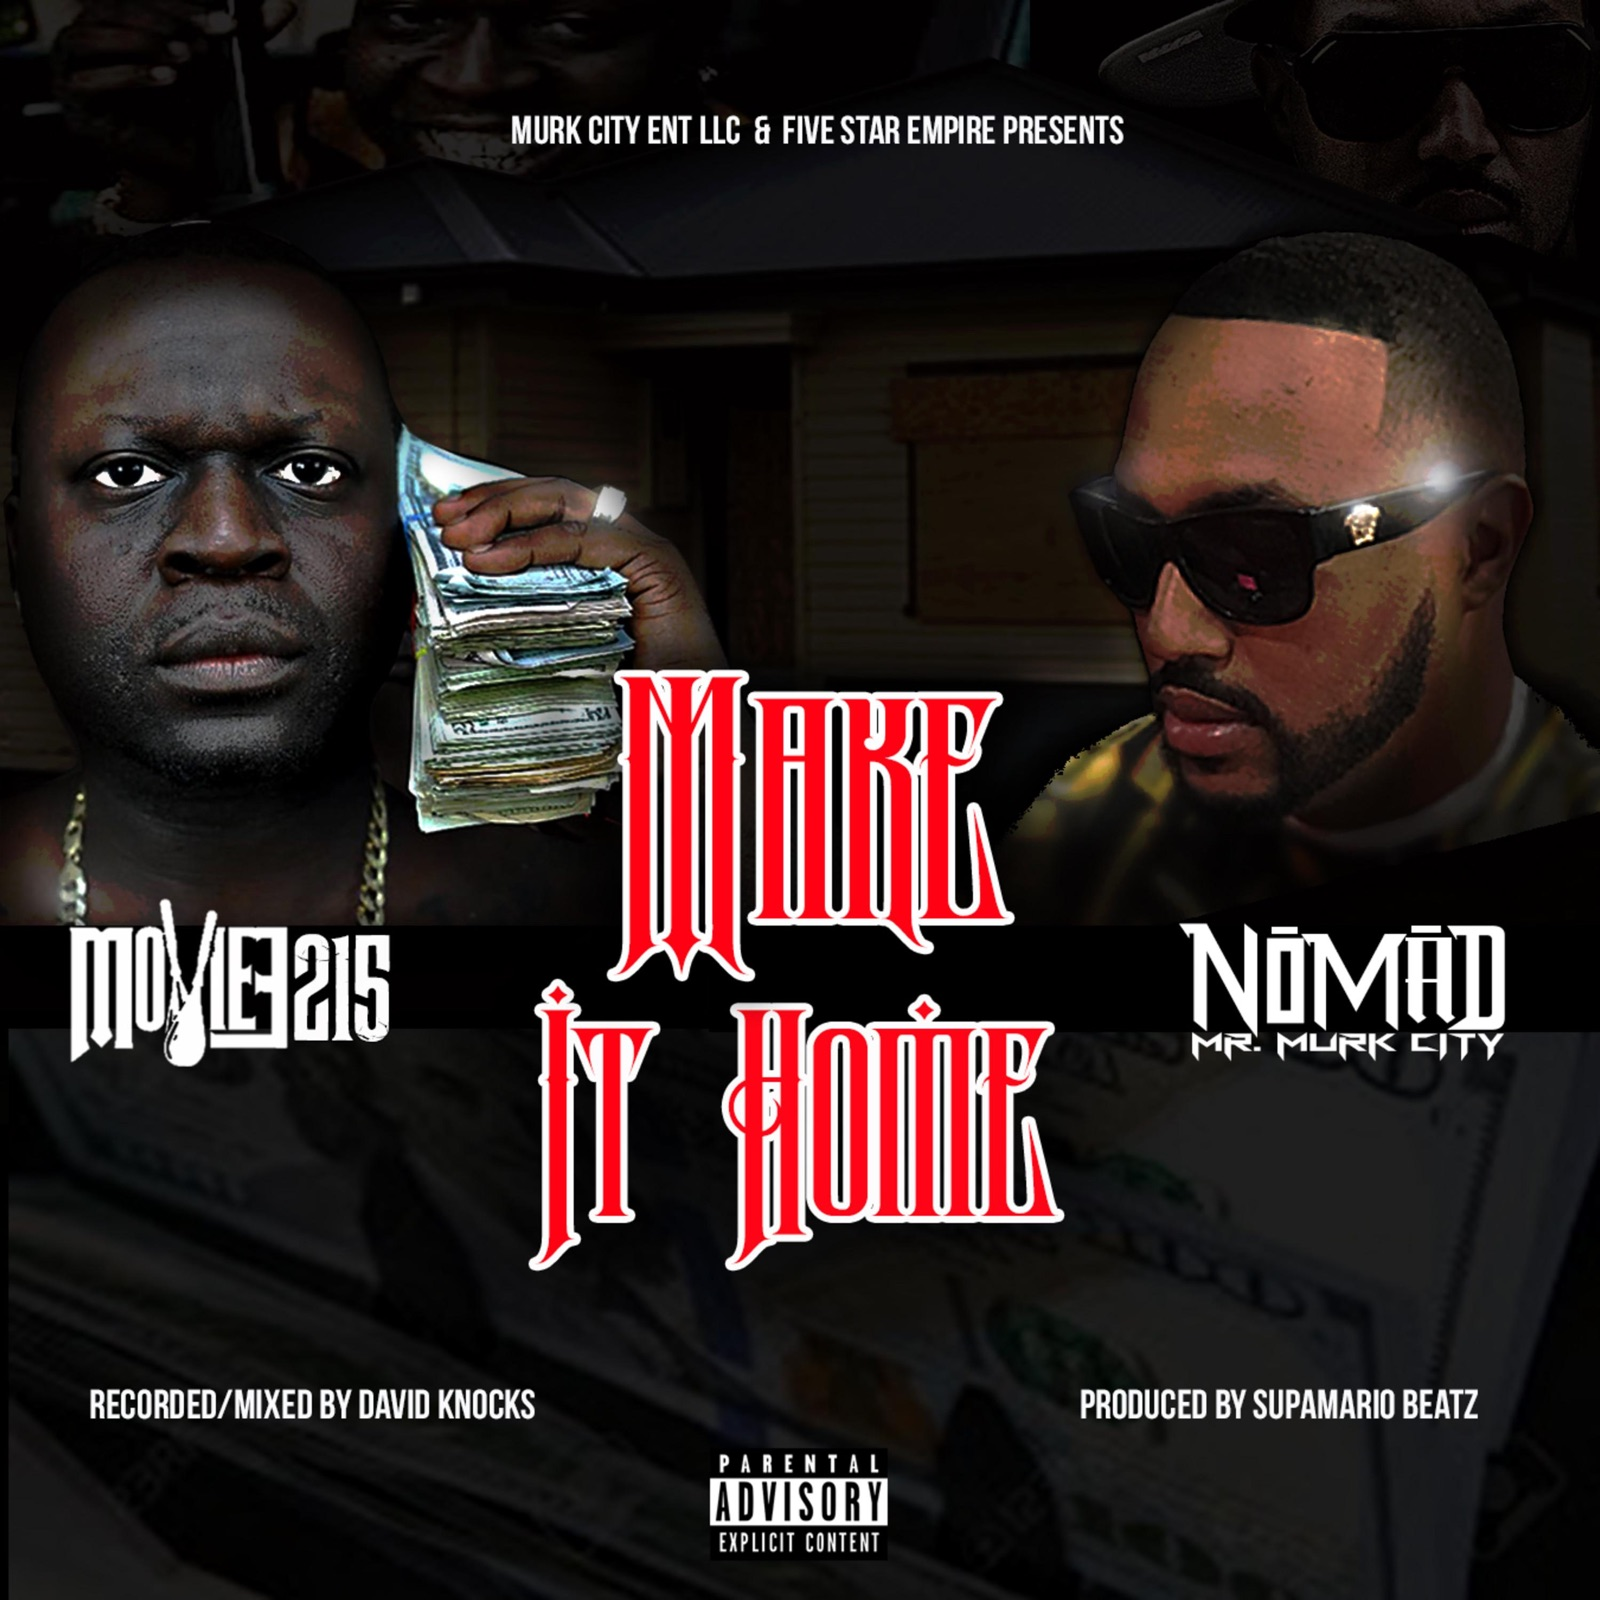 Nomad Mr. Murk City , Moviee215 (Make It Home - Single)